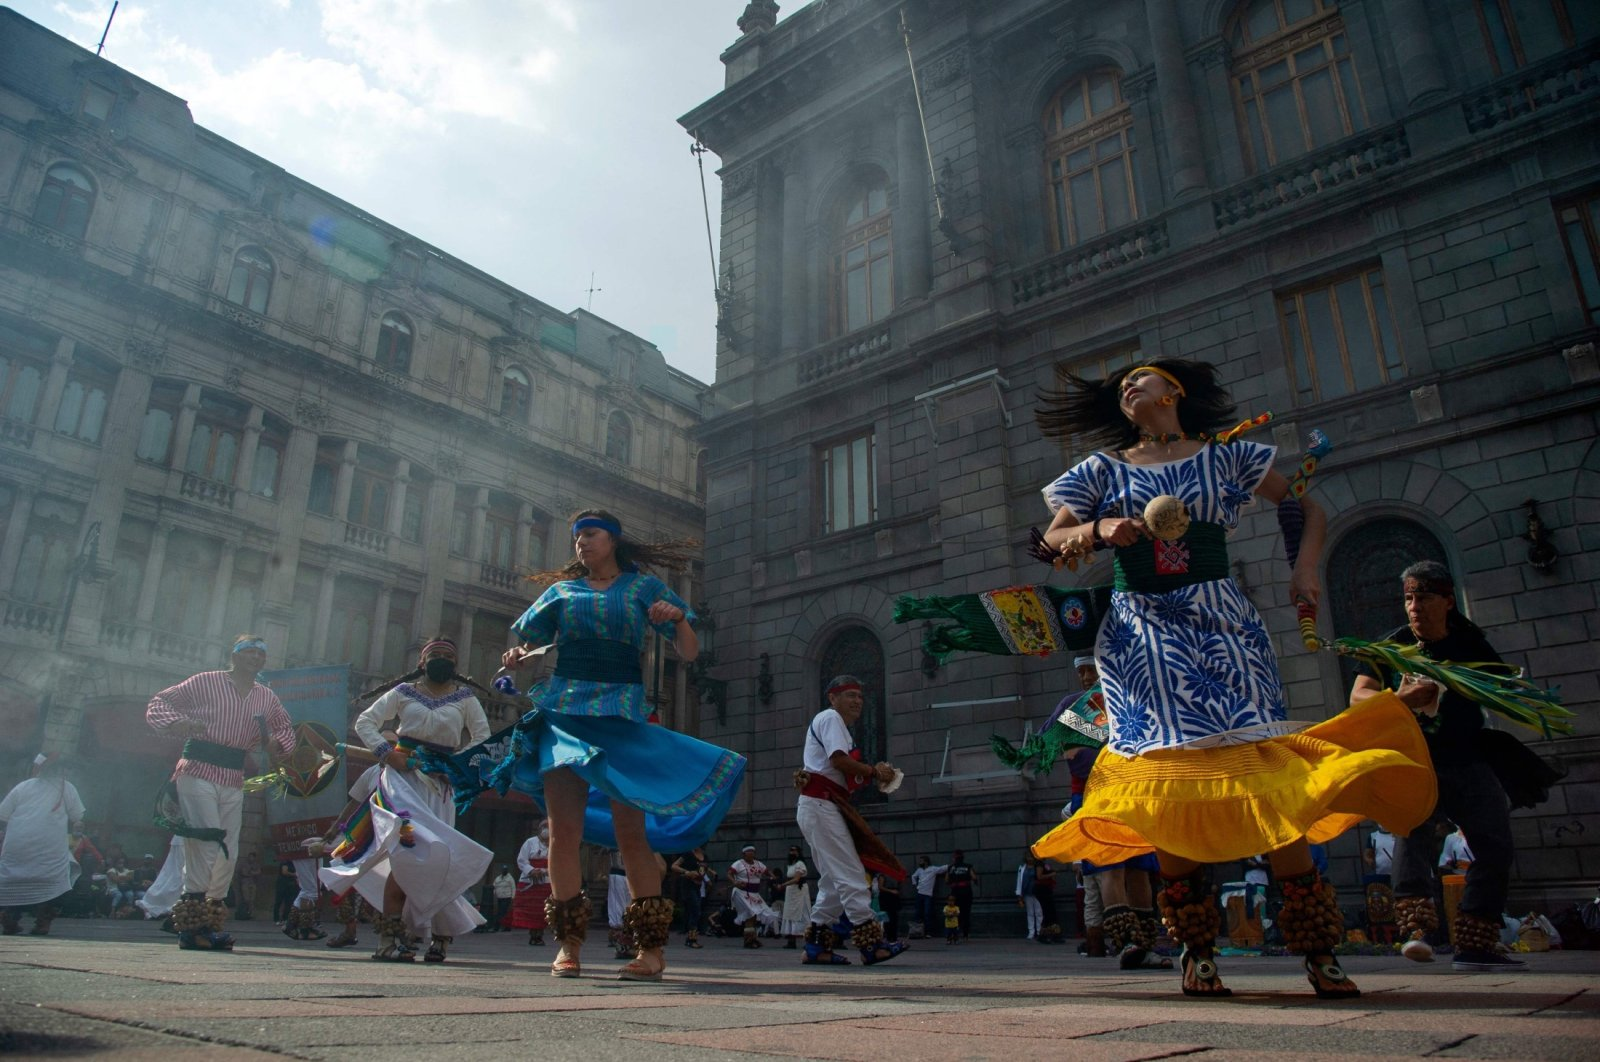 People perform an Aztec dance at the historical Center in Mexico City, Mexico, Aug. 3, 2021. (AFP Photo)